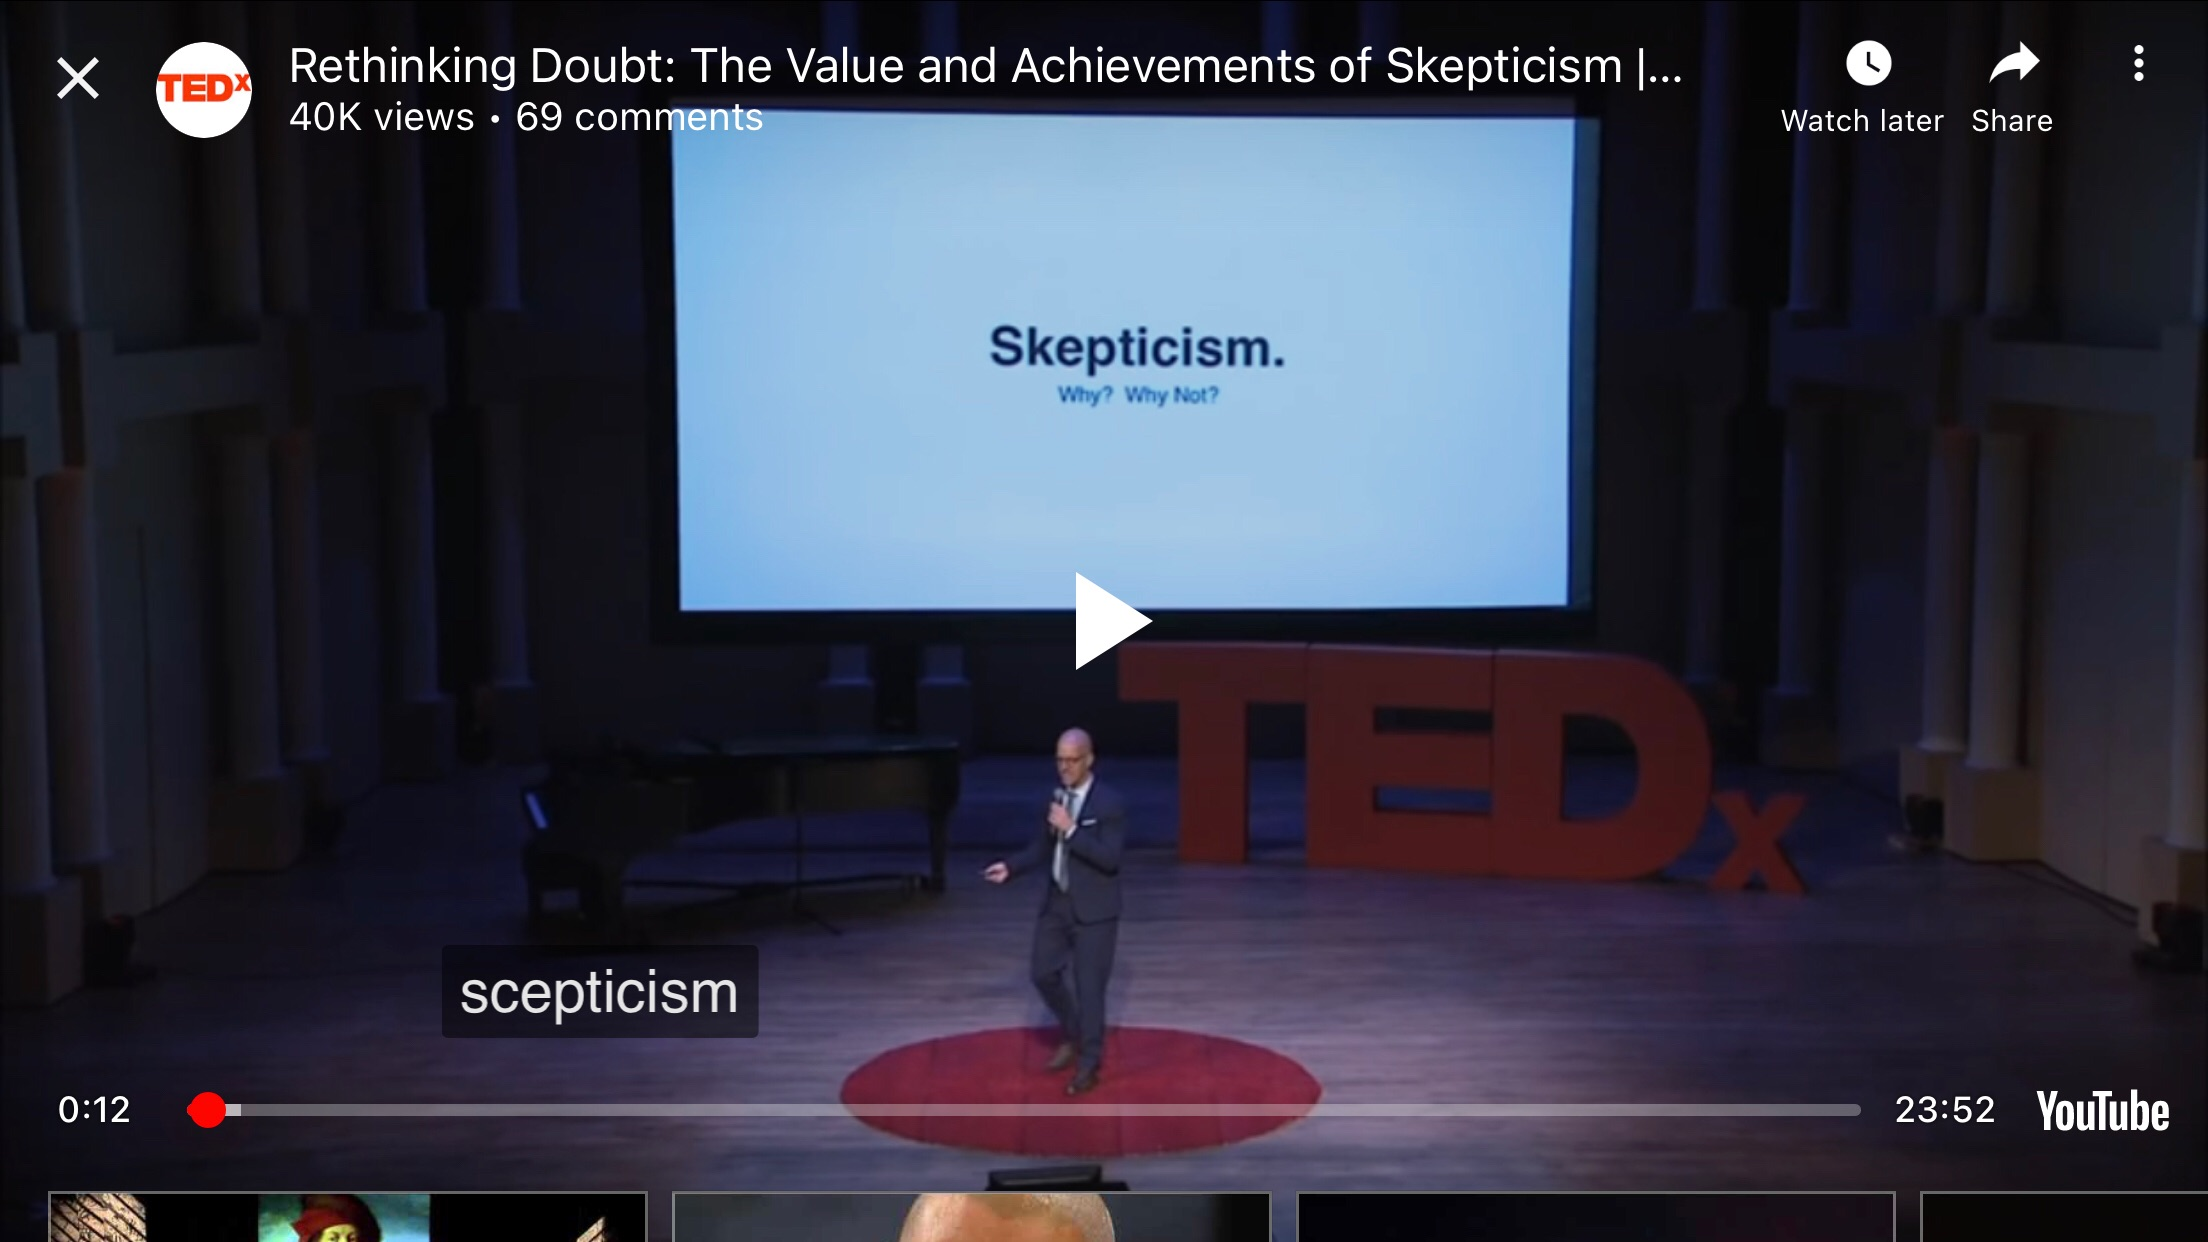 This TED Talk (Rethinking doubt)